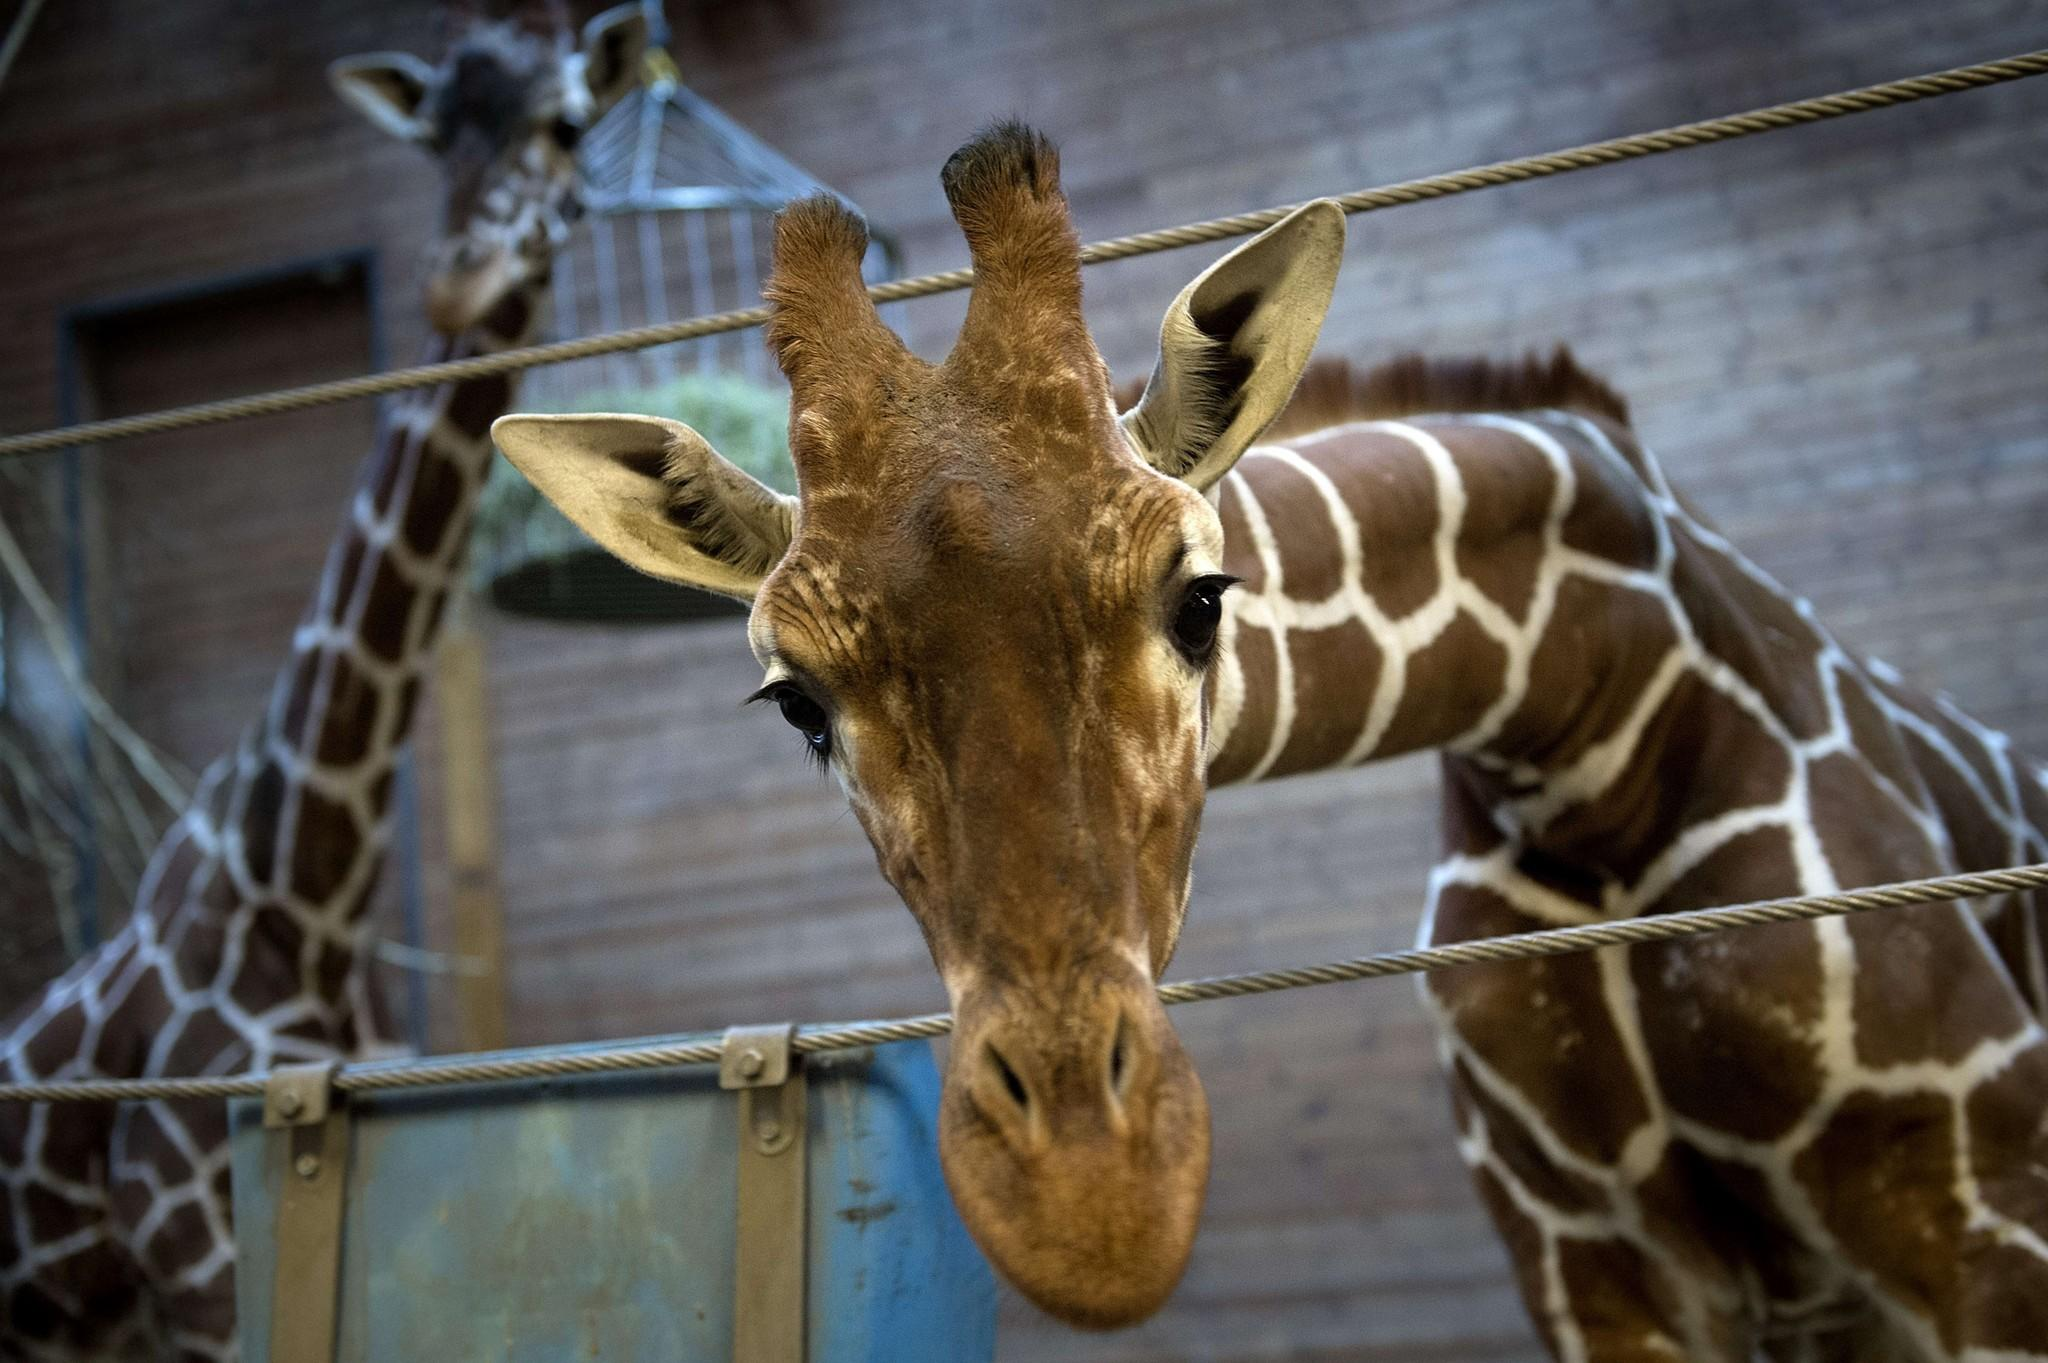 Picture taken on Feb. 7, 2014 shows a healthy young giraffe named Marius who was shot dead and autopsied in the presence of visitors to the gardens at Copenhagen Zoo.